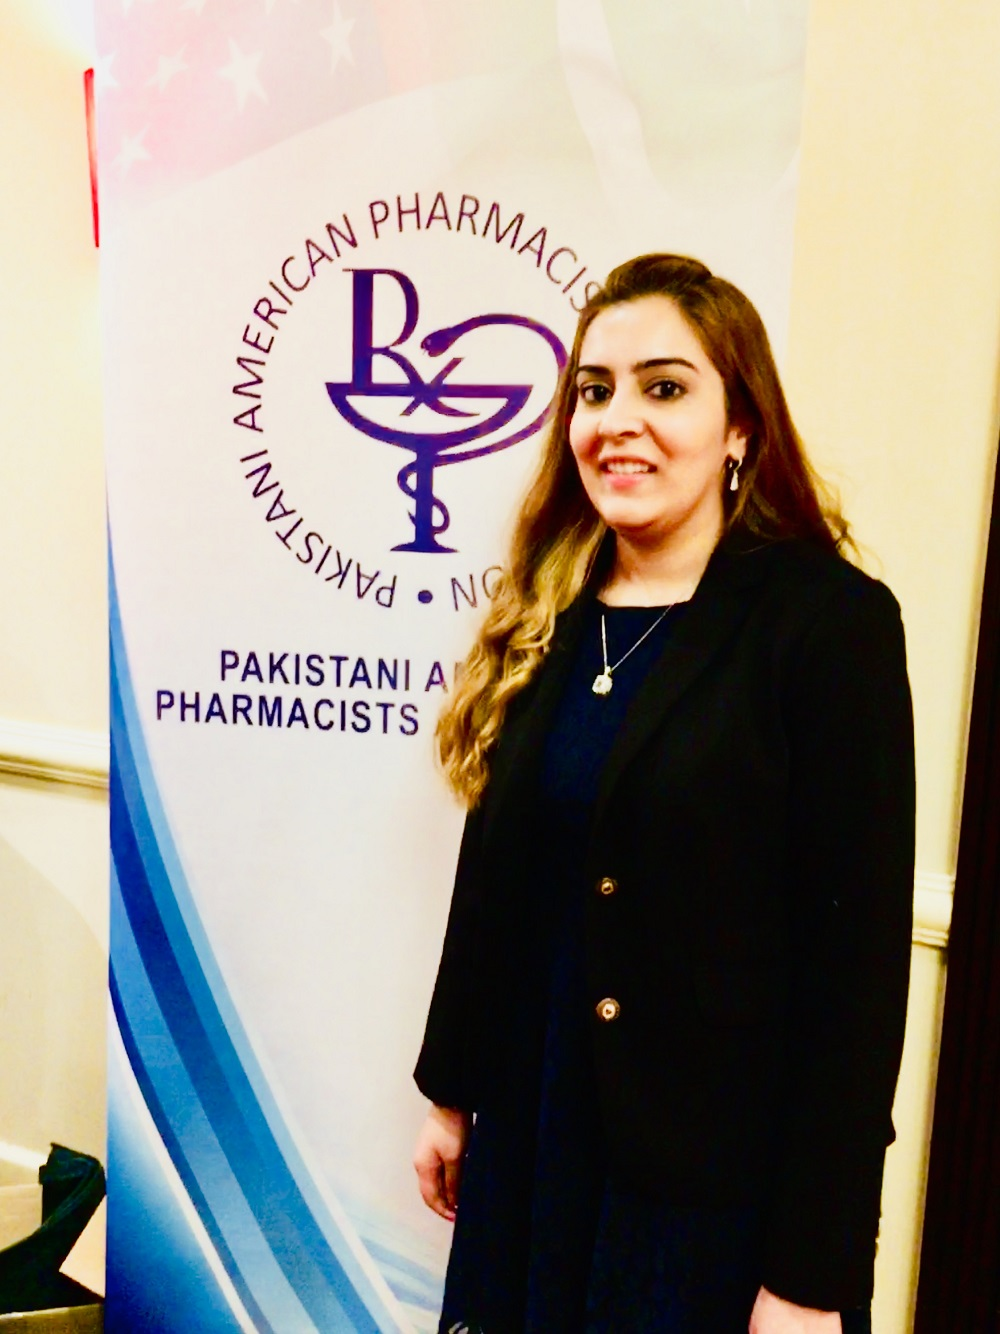 TCOP P3 Saera Murtaza was honored the Pakistani-American Pharmacists Association.